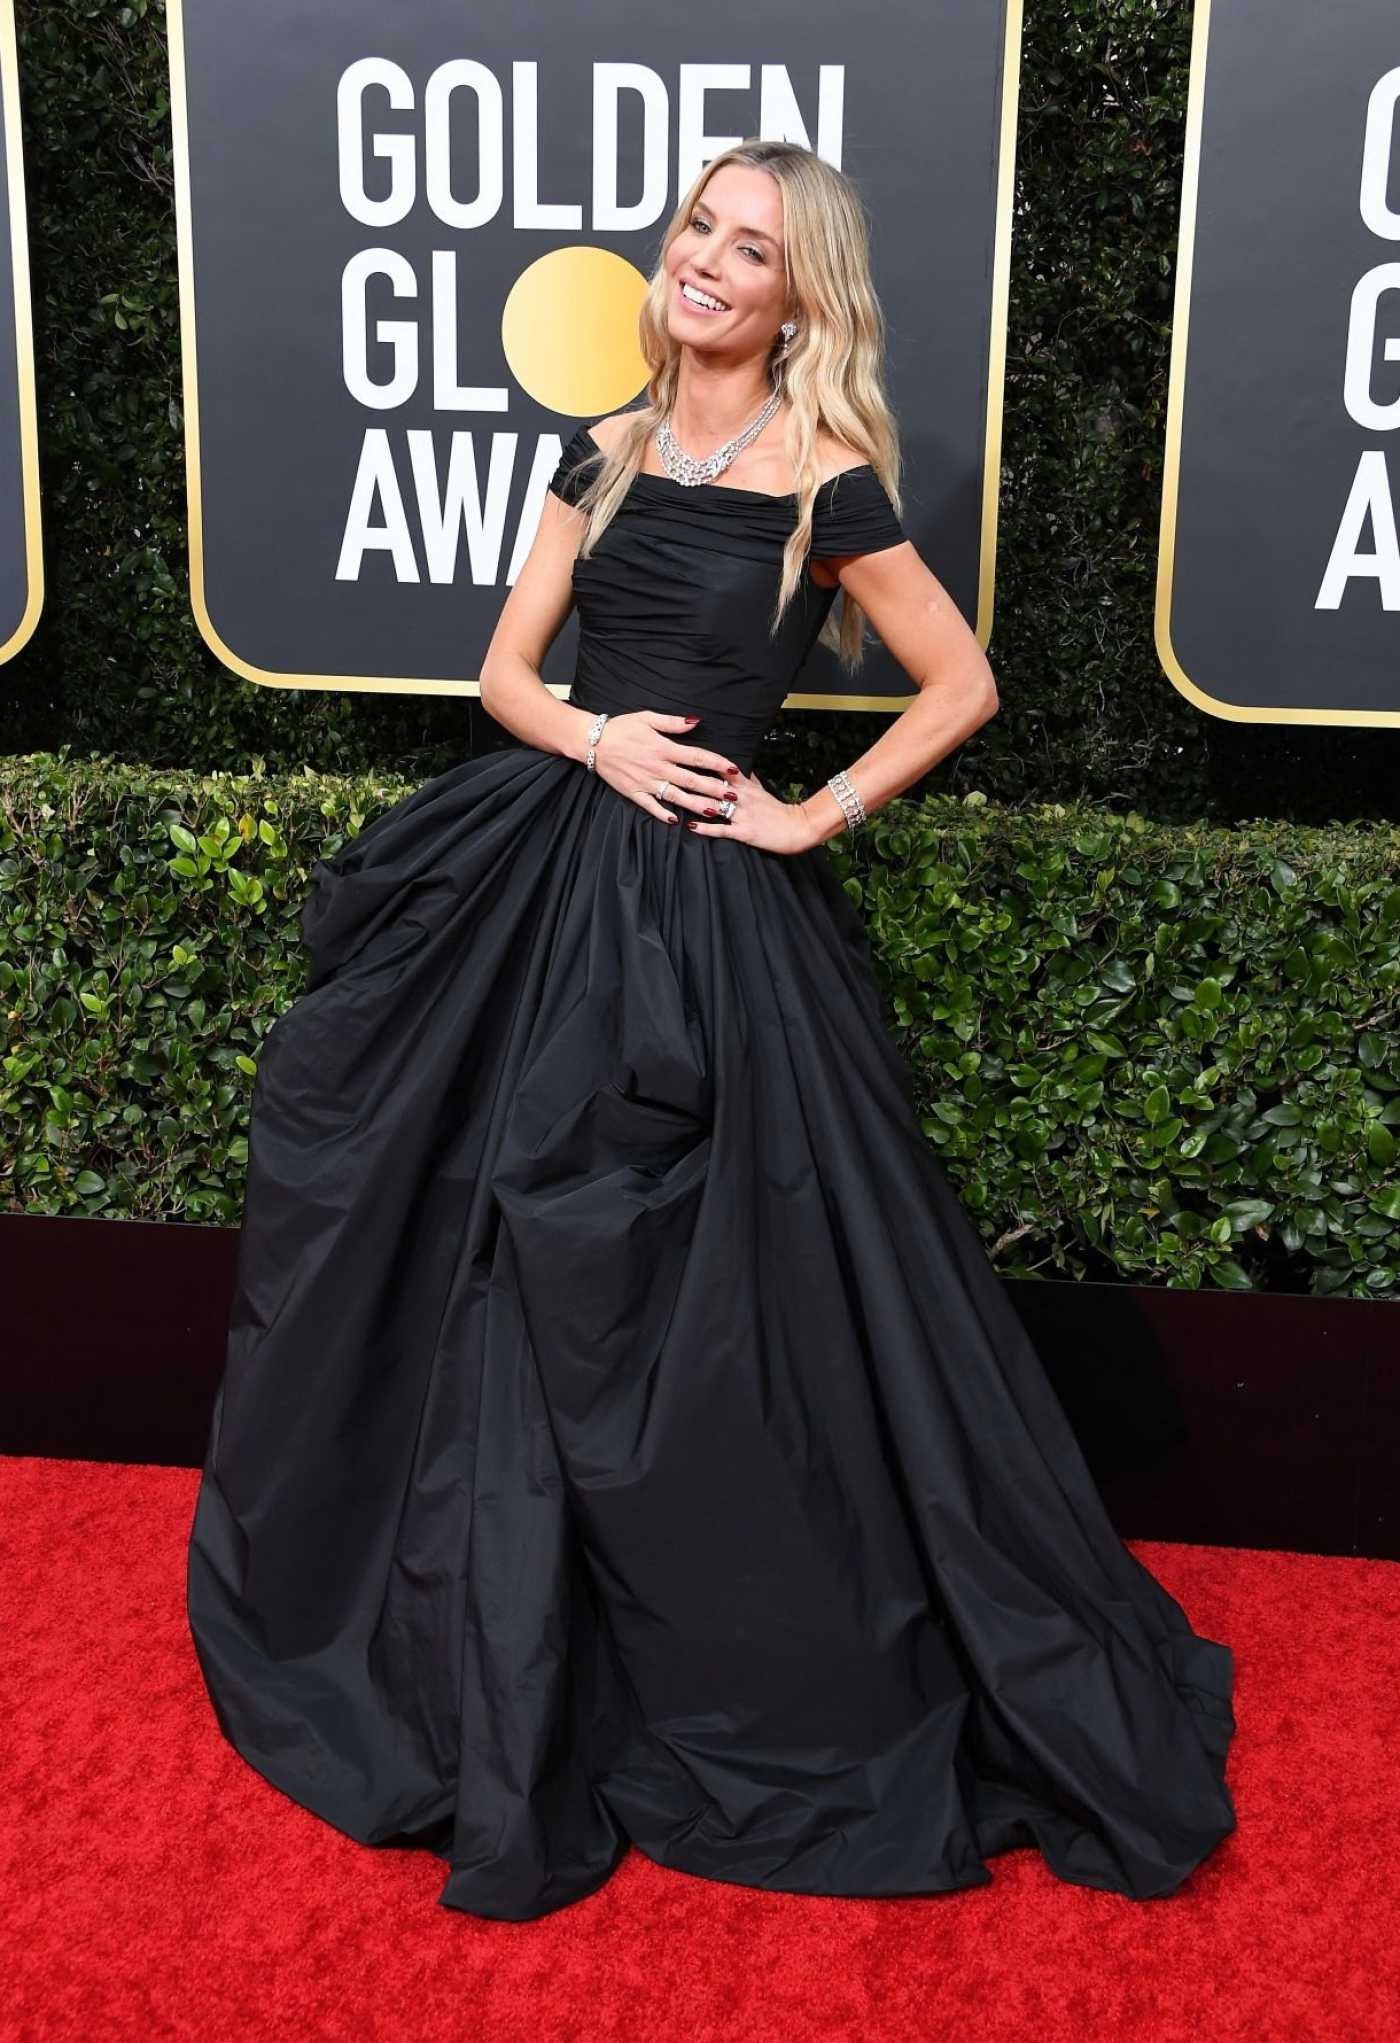 Annabelle Wallis Attends the 77th Annual Golden Globe Awards at the Beverly Hilton Hotel in Beverly Hills 01/05/2020